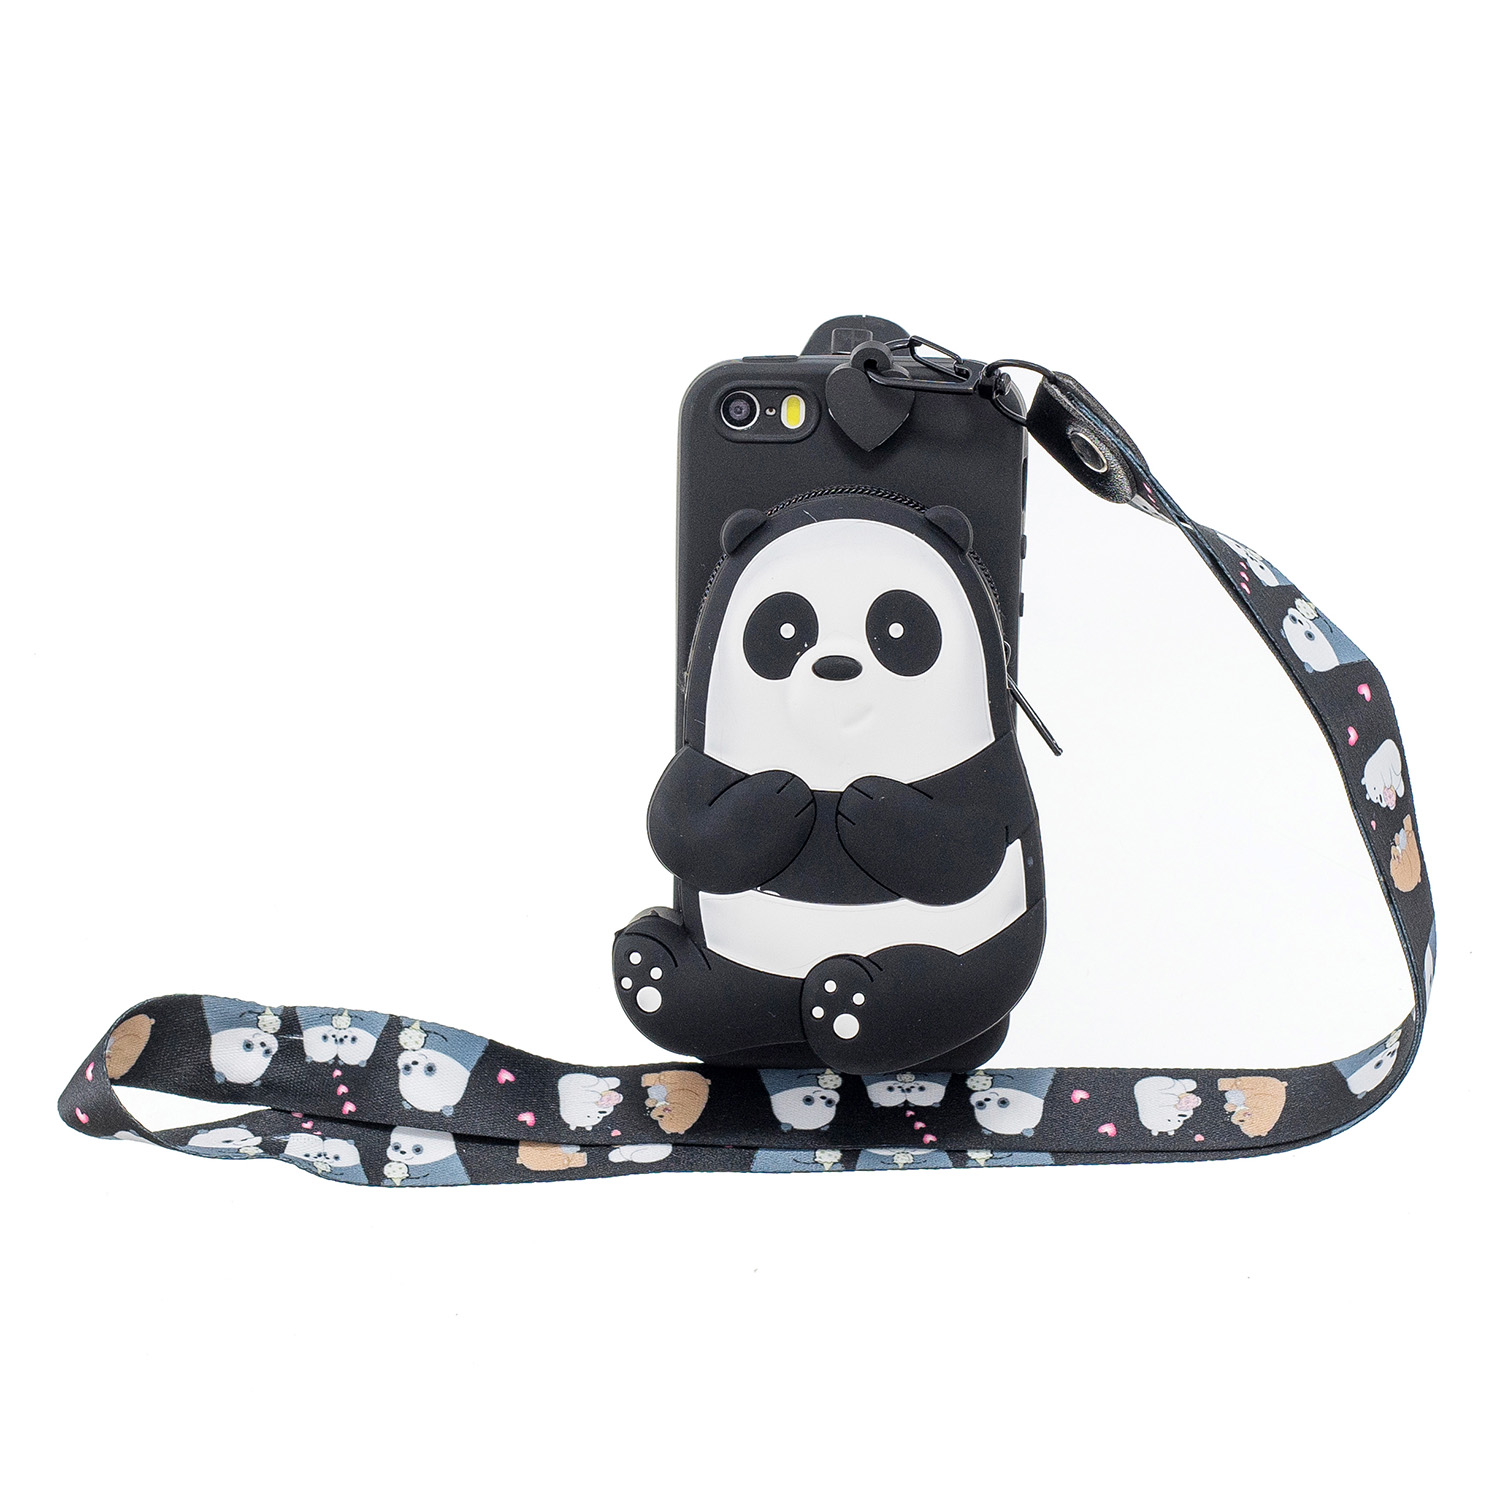 For Iphone 5 / 5S / SE Cartoon Hanging Lanyard + Fall Resistant Cartoon TPU Full Protective Mobile Phone Cover with Coin Purse 5 black striped bears